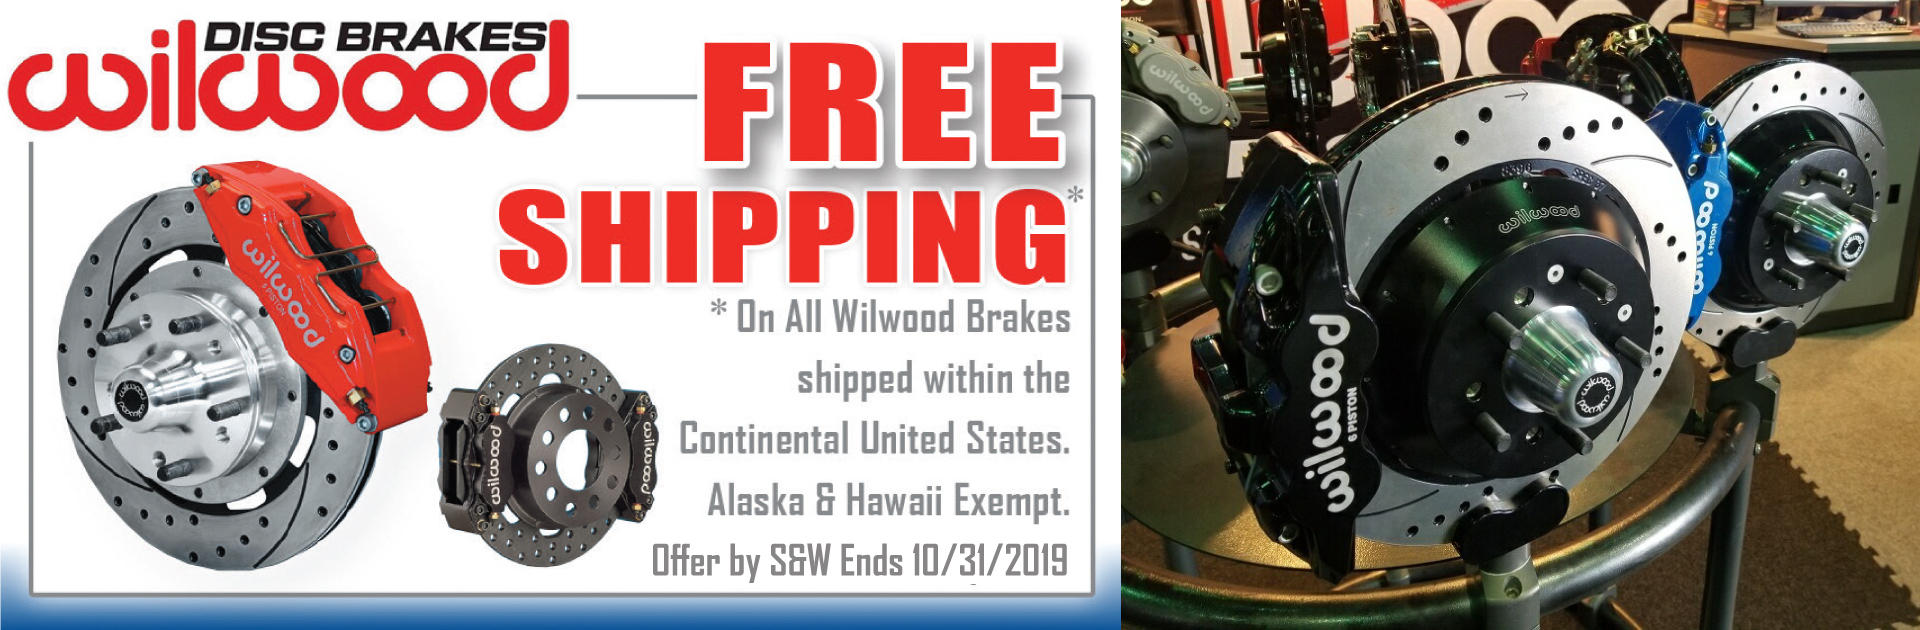 Free Shipping on Wilwood Brakes Offer